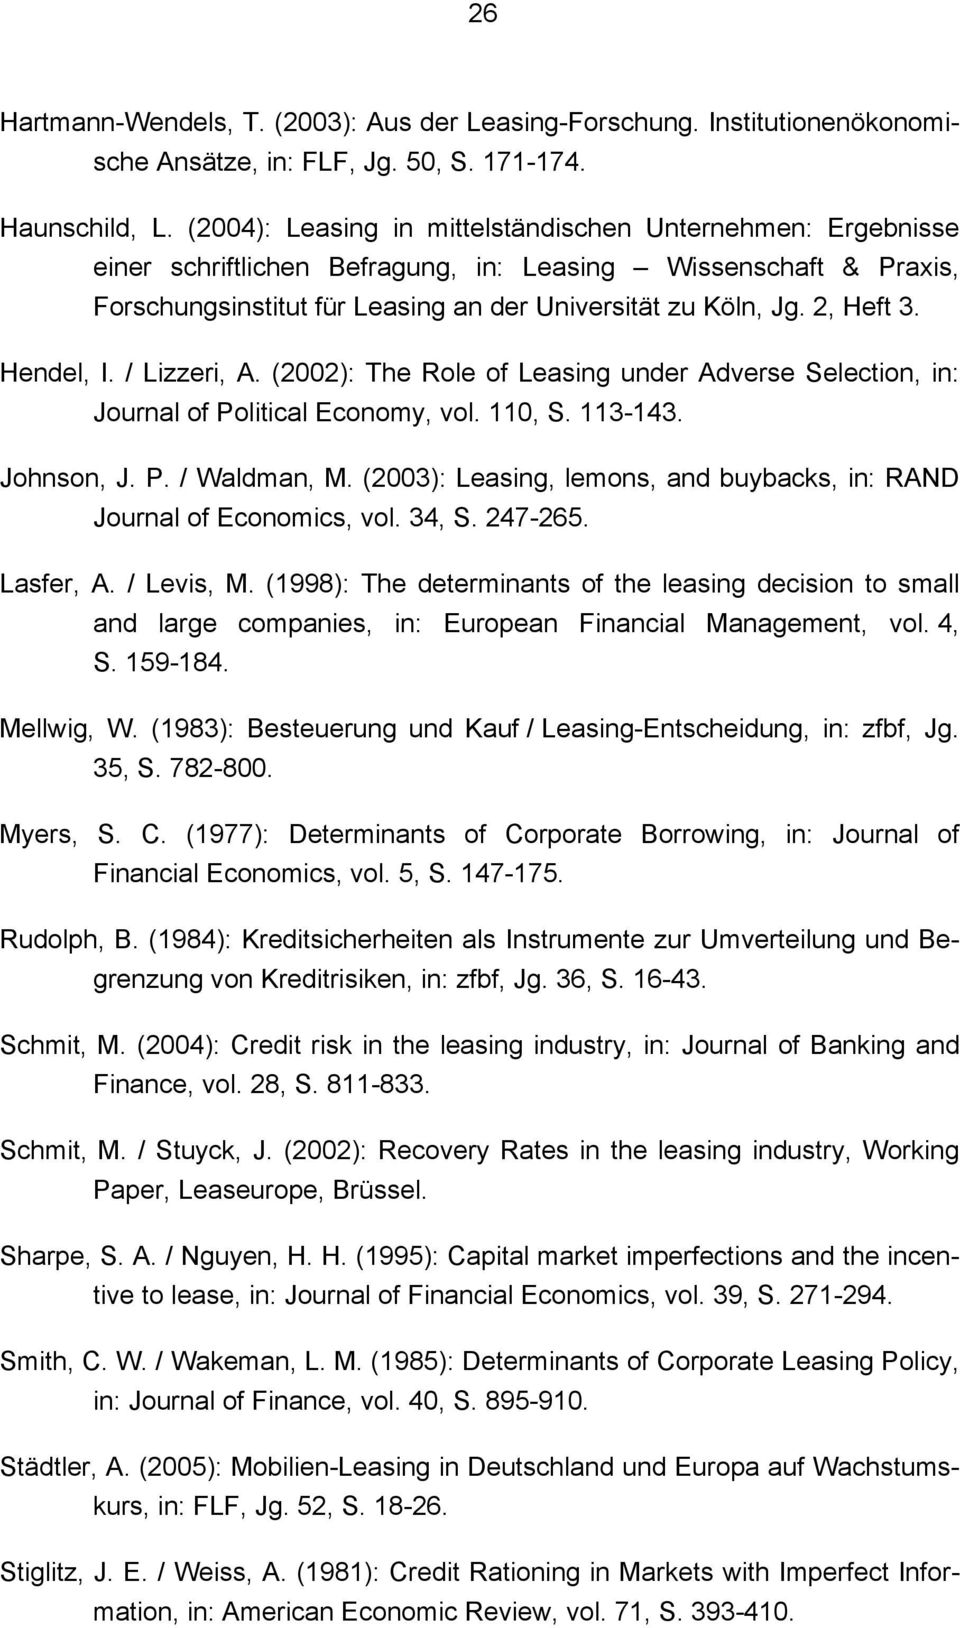 Hendel, I. / Lizzeri, A. (2002): The Role of Leasing under Adverse Selection, in: Journal of Political Economy, vol. 110, S. 113-143. Johnson, J. P. / Waldman, M.